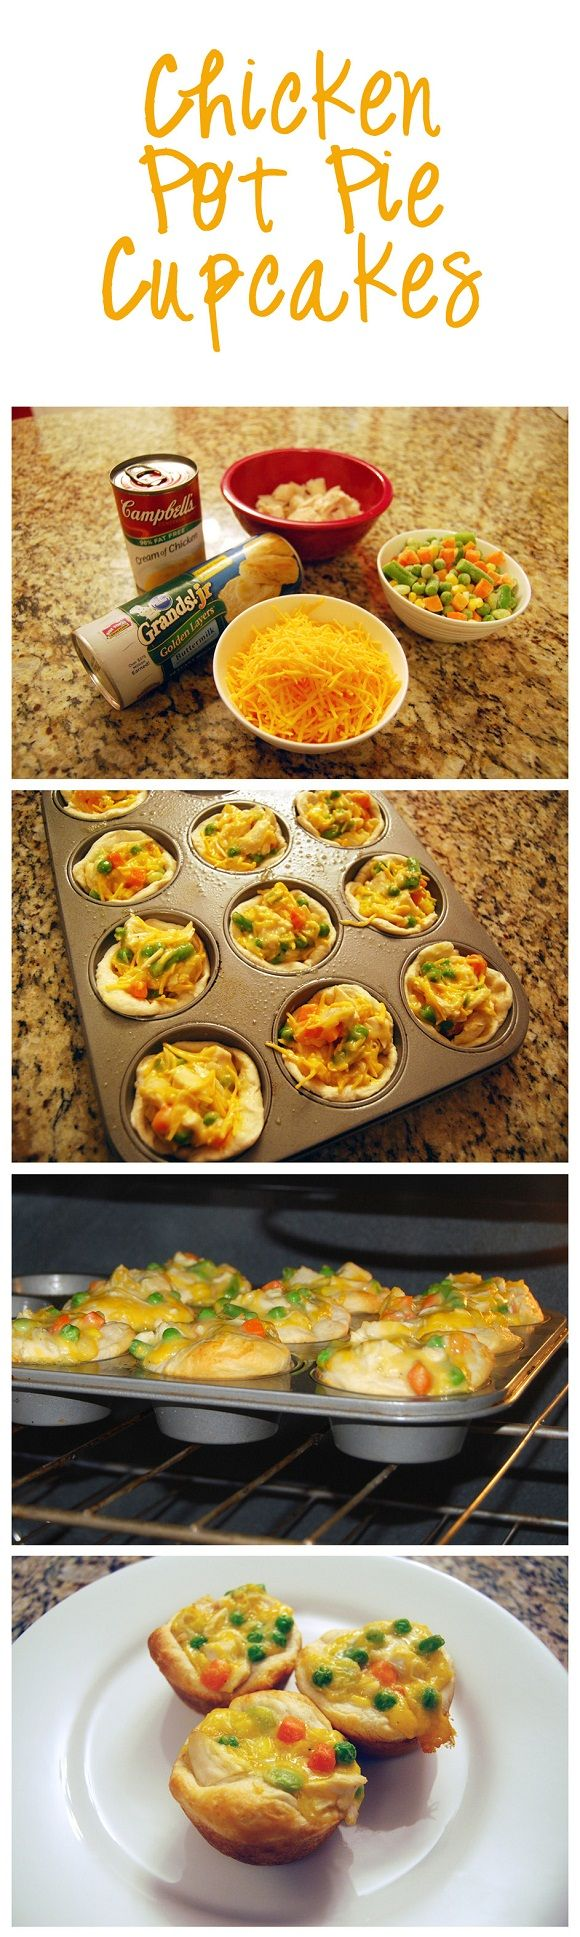 Chicken Pot Pie Cupcakes {small servings, and depending on what you use in the dough, could be healthy}